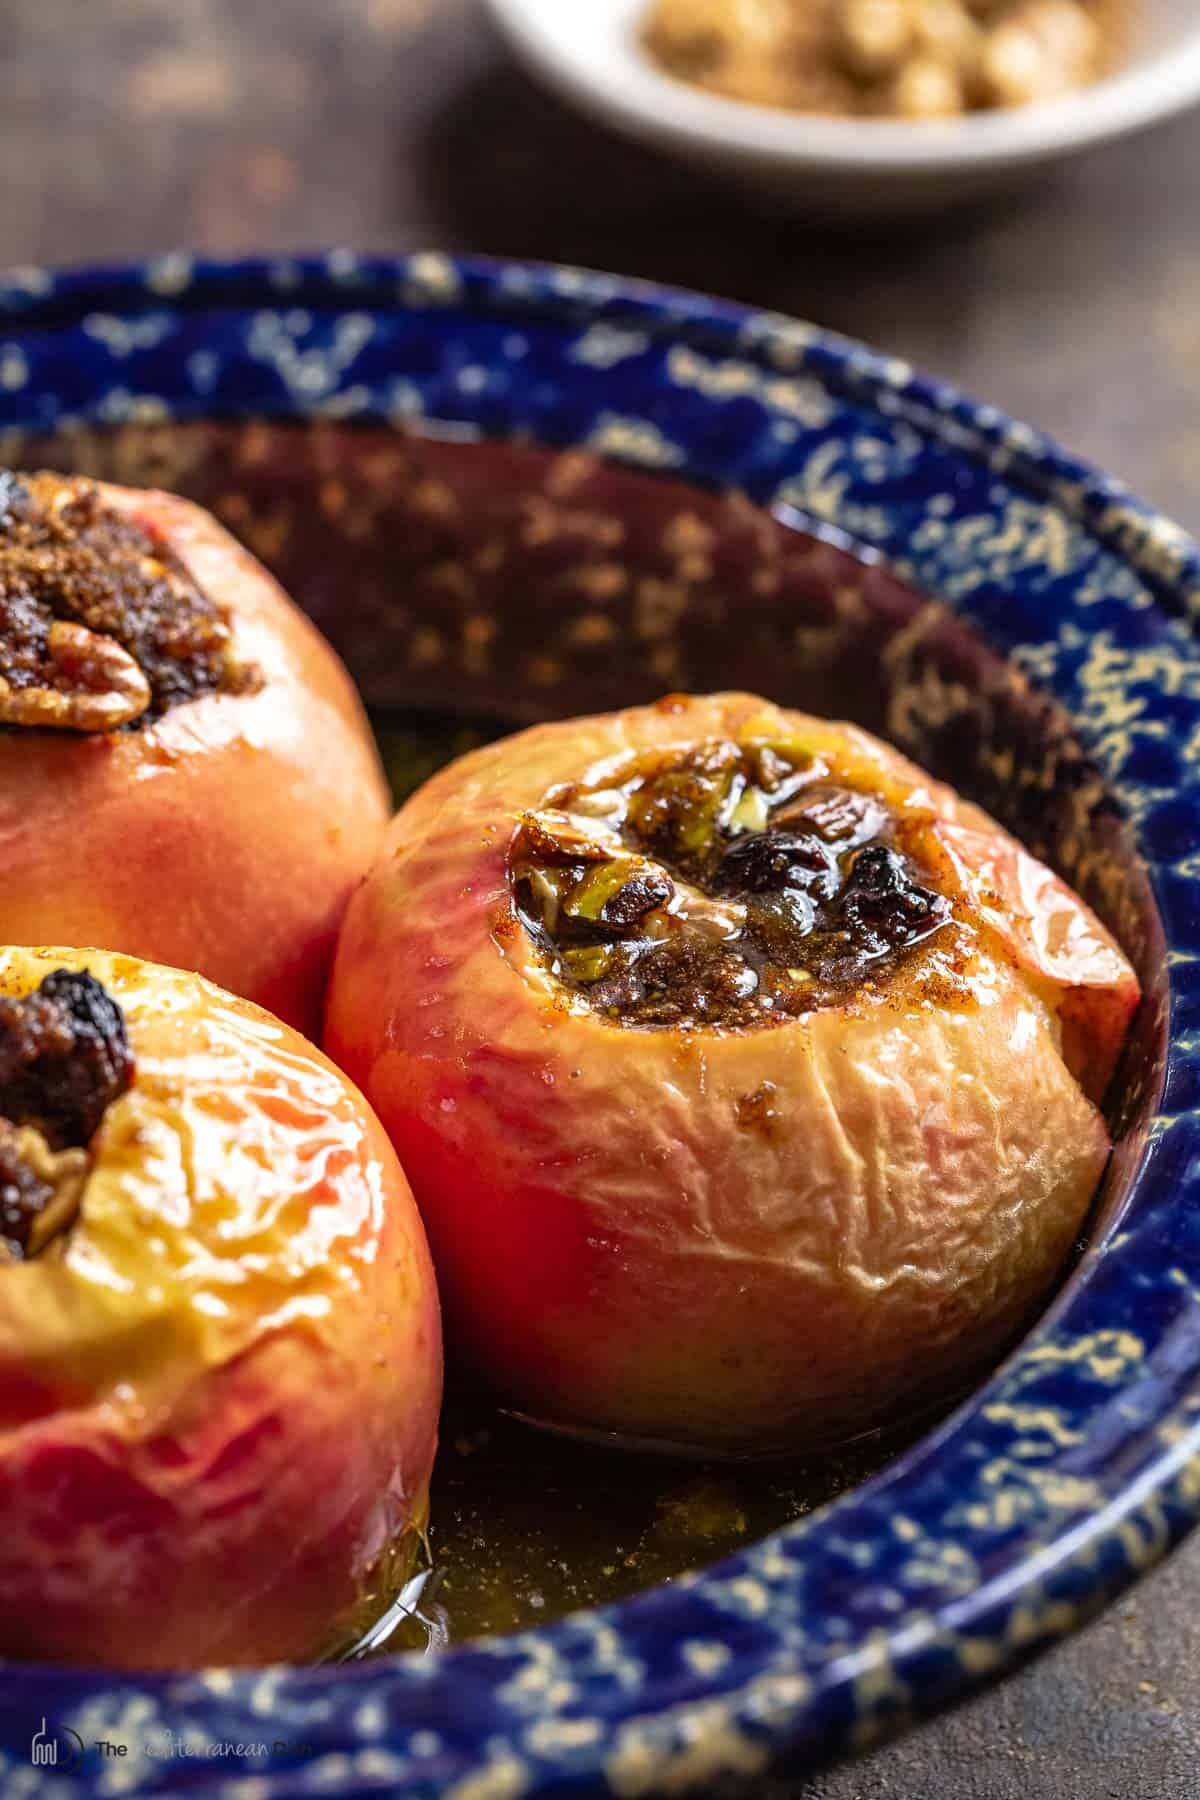 Baked apples in their blue baking dish with another small dish of extra nuts to the side